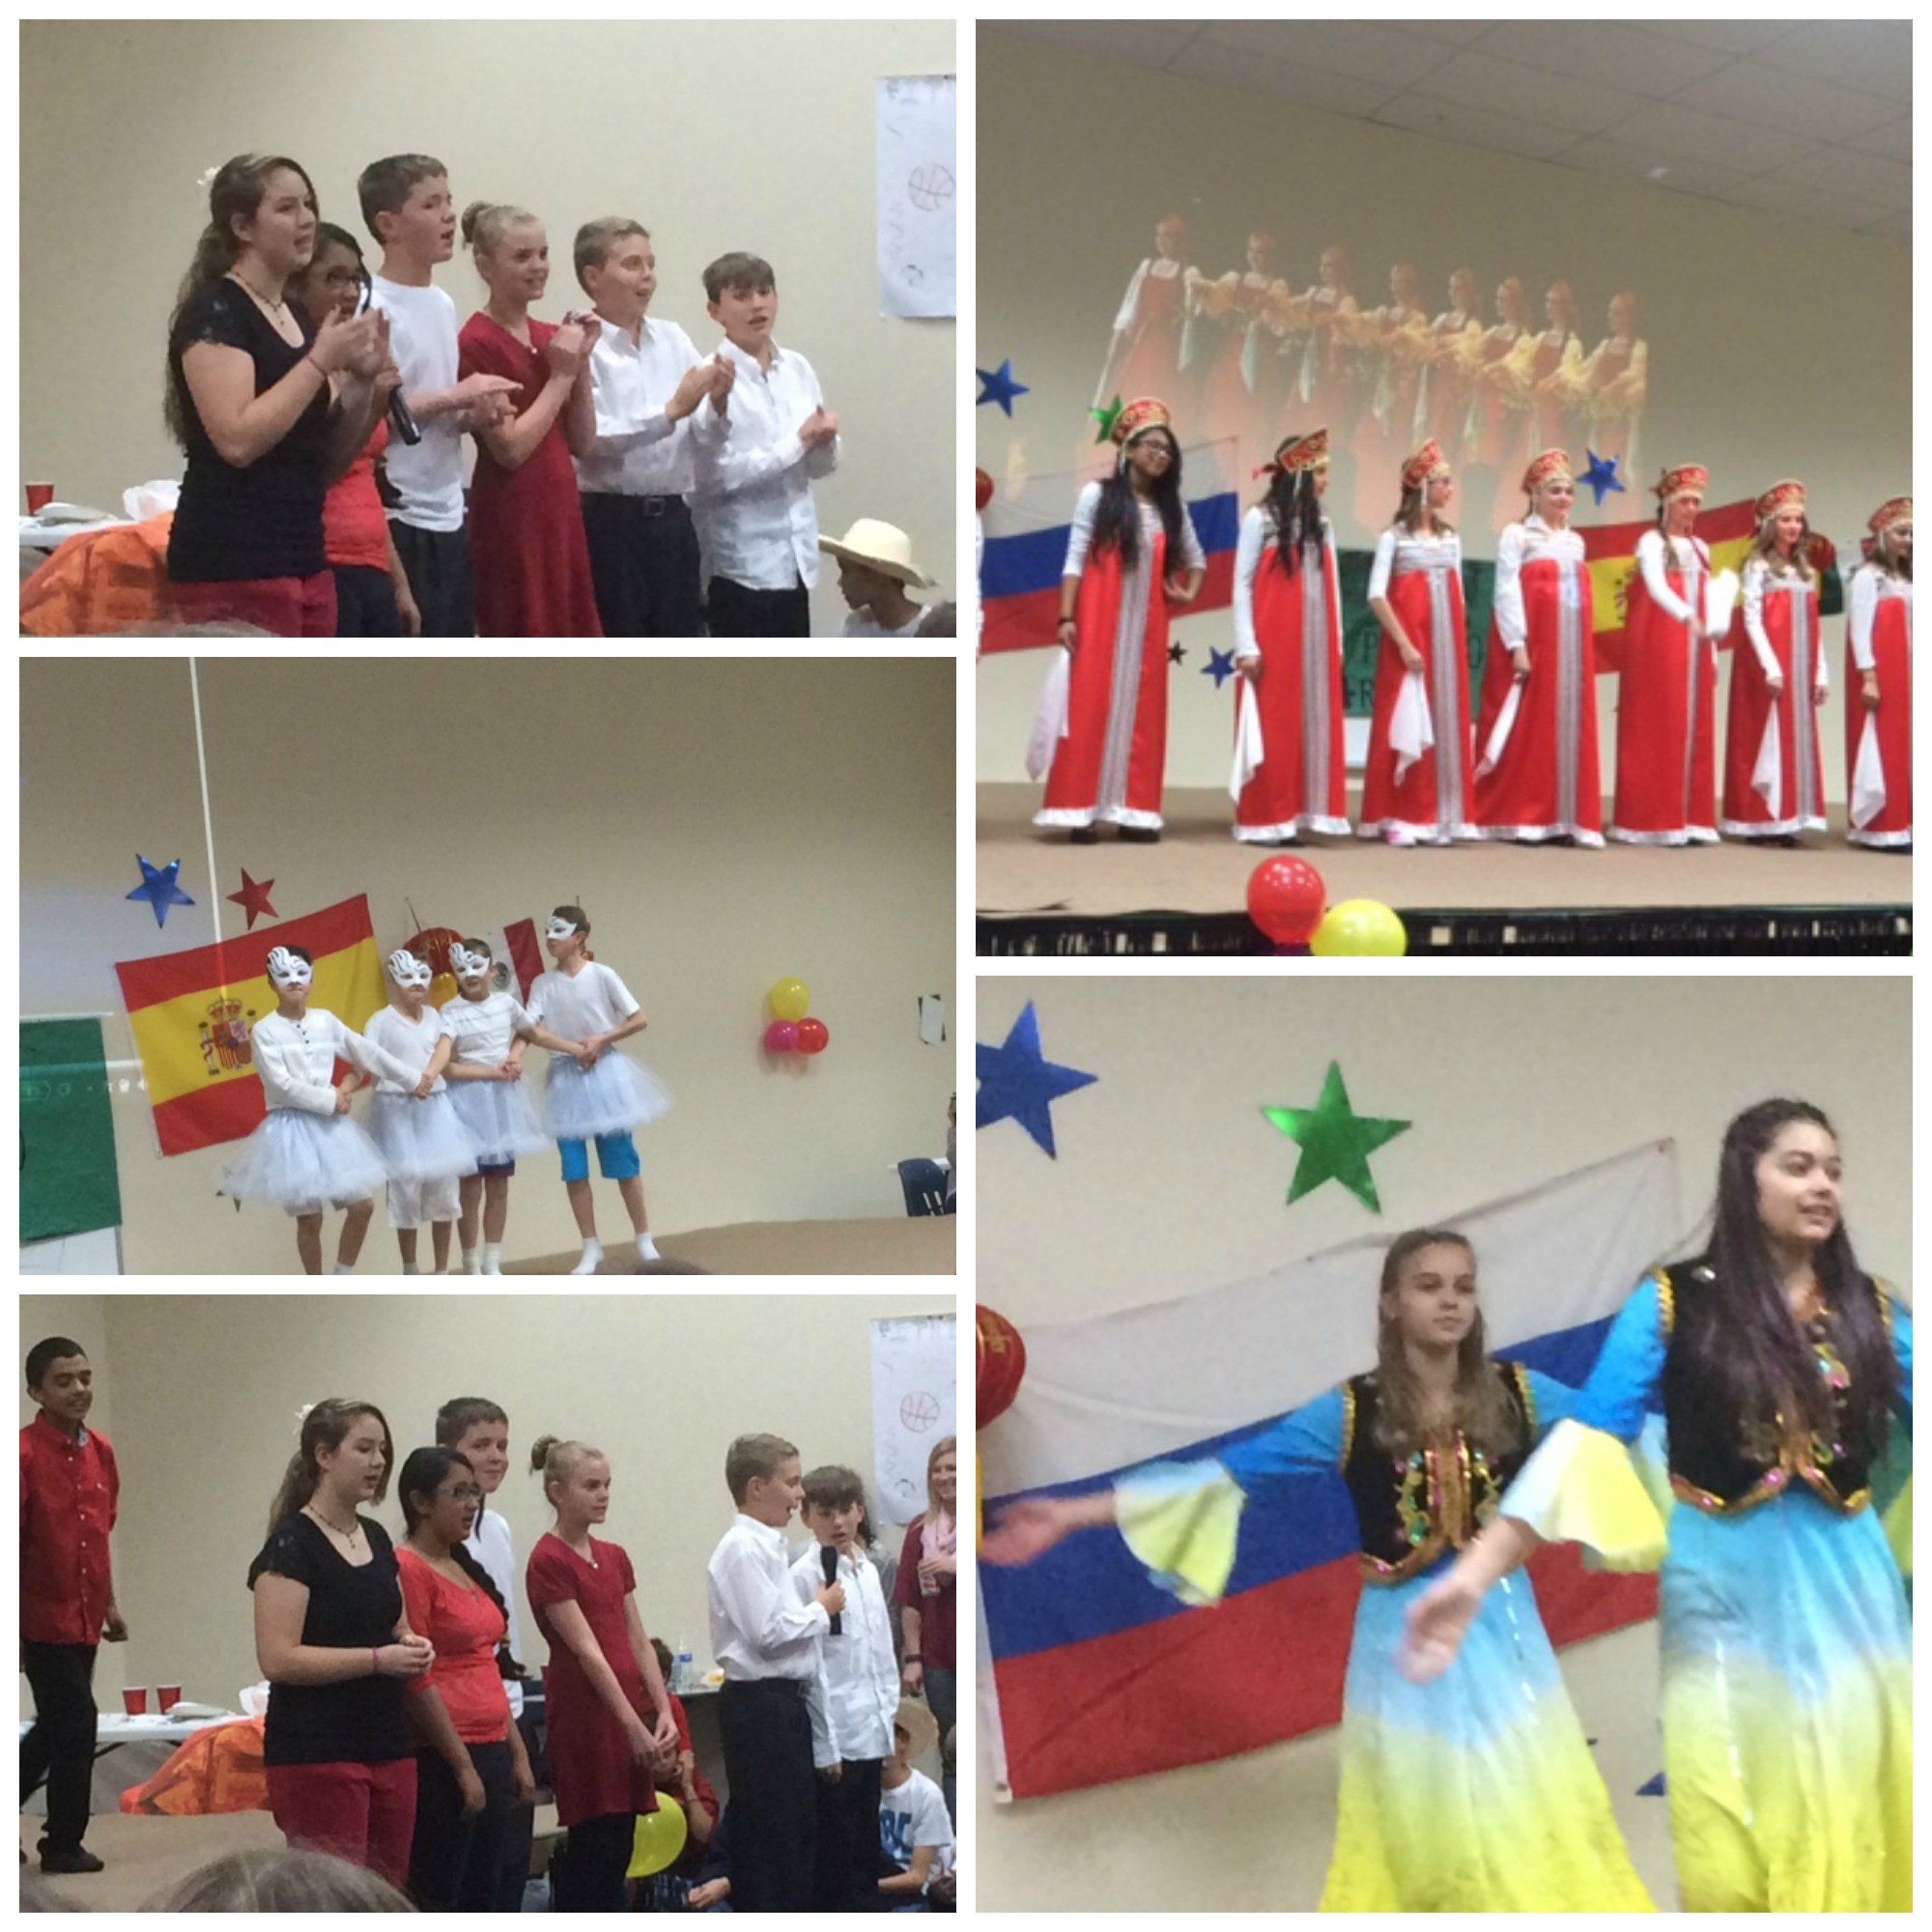 Five photo collage showing boy and girl students in traditional dress and singing during a Russian Culture performance